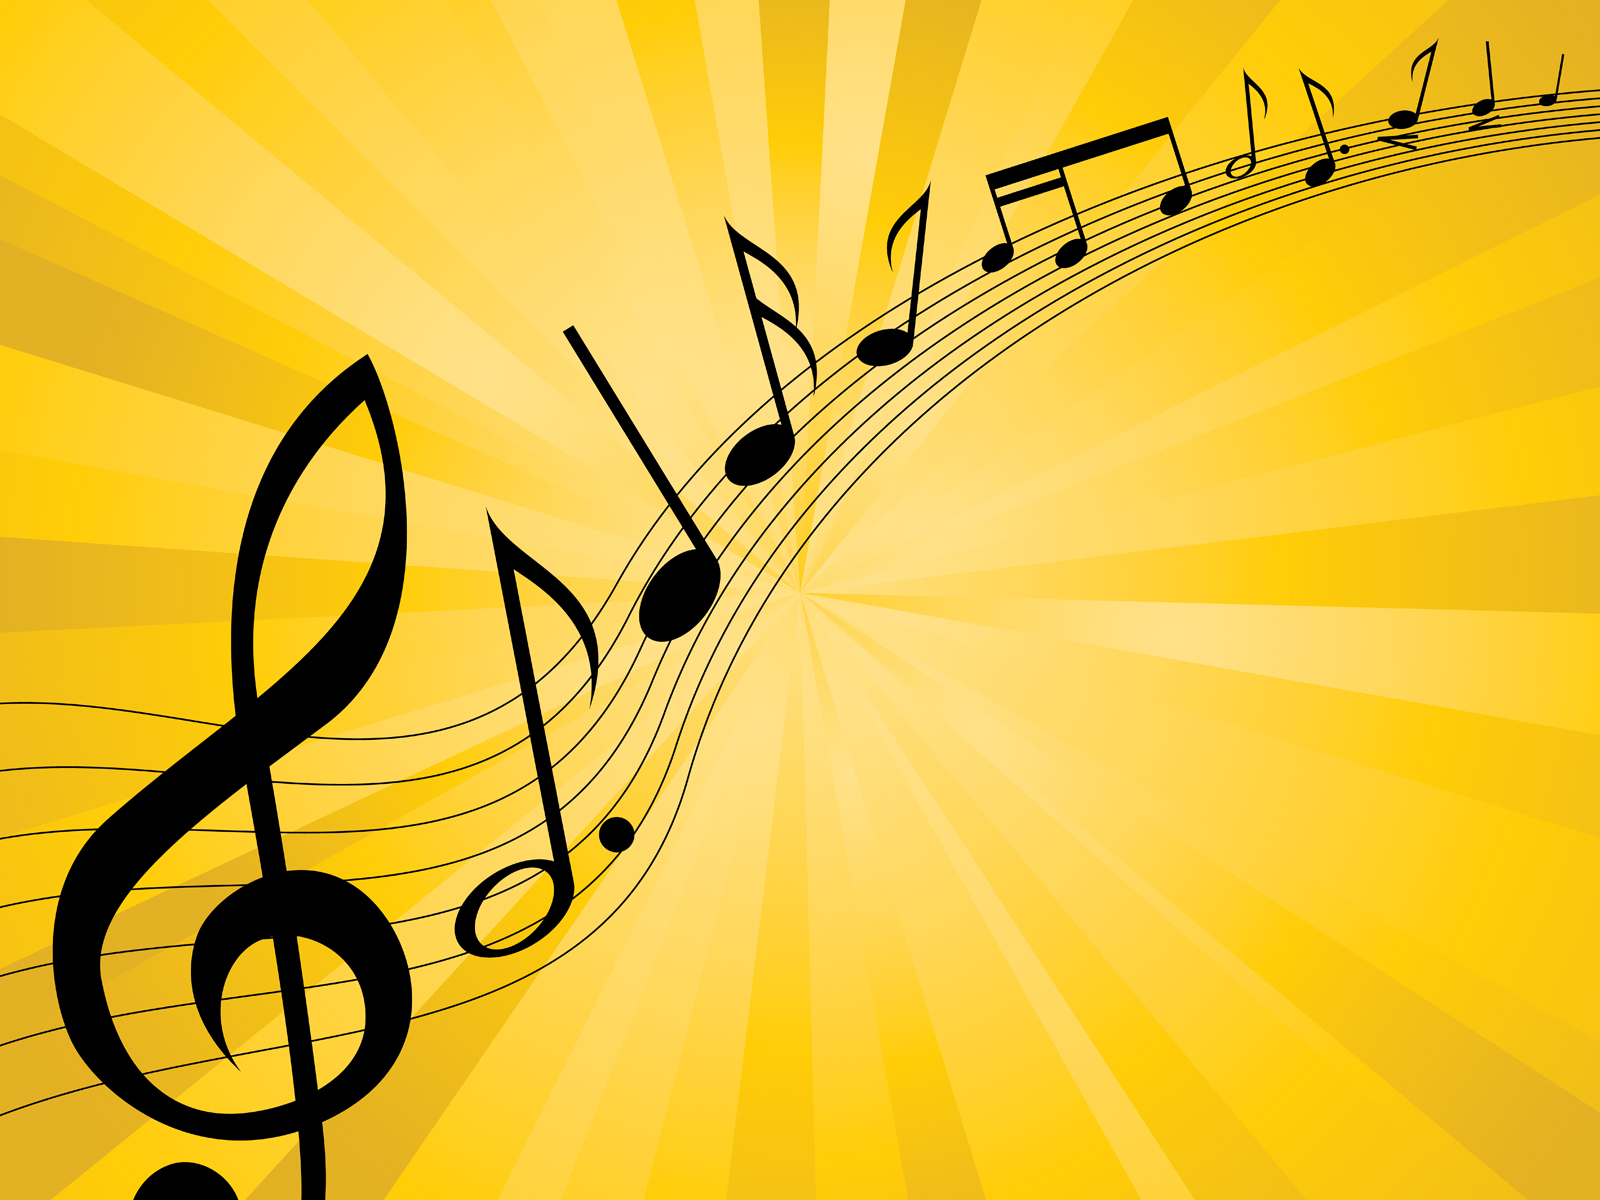 Music Background Images: Introductions Music Melody Backgrounds